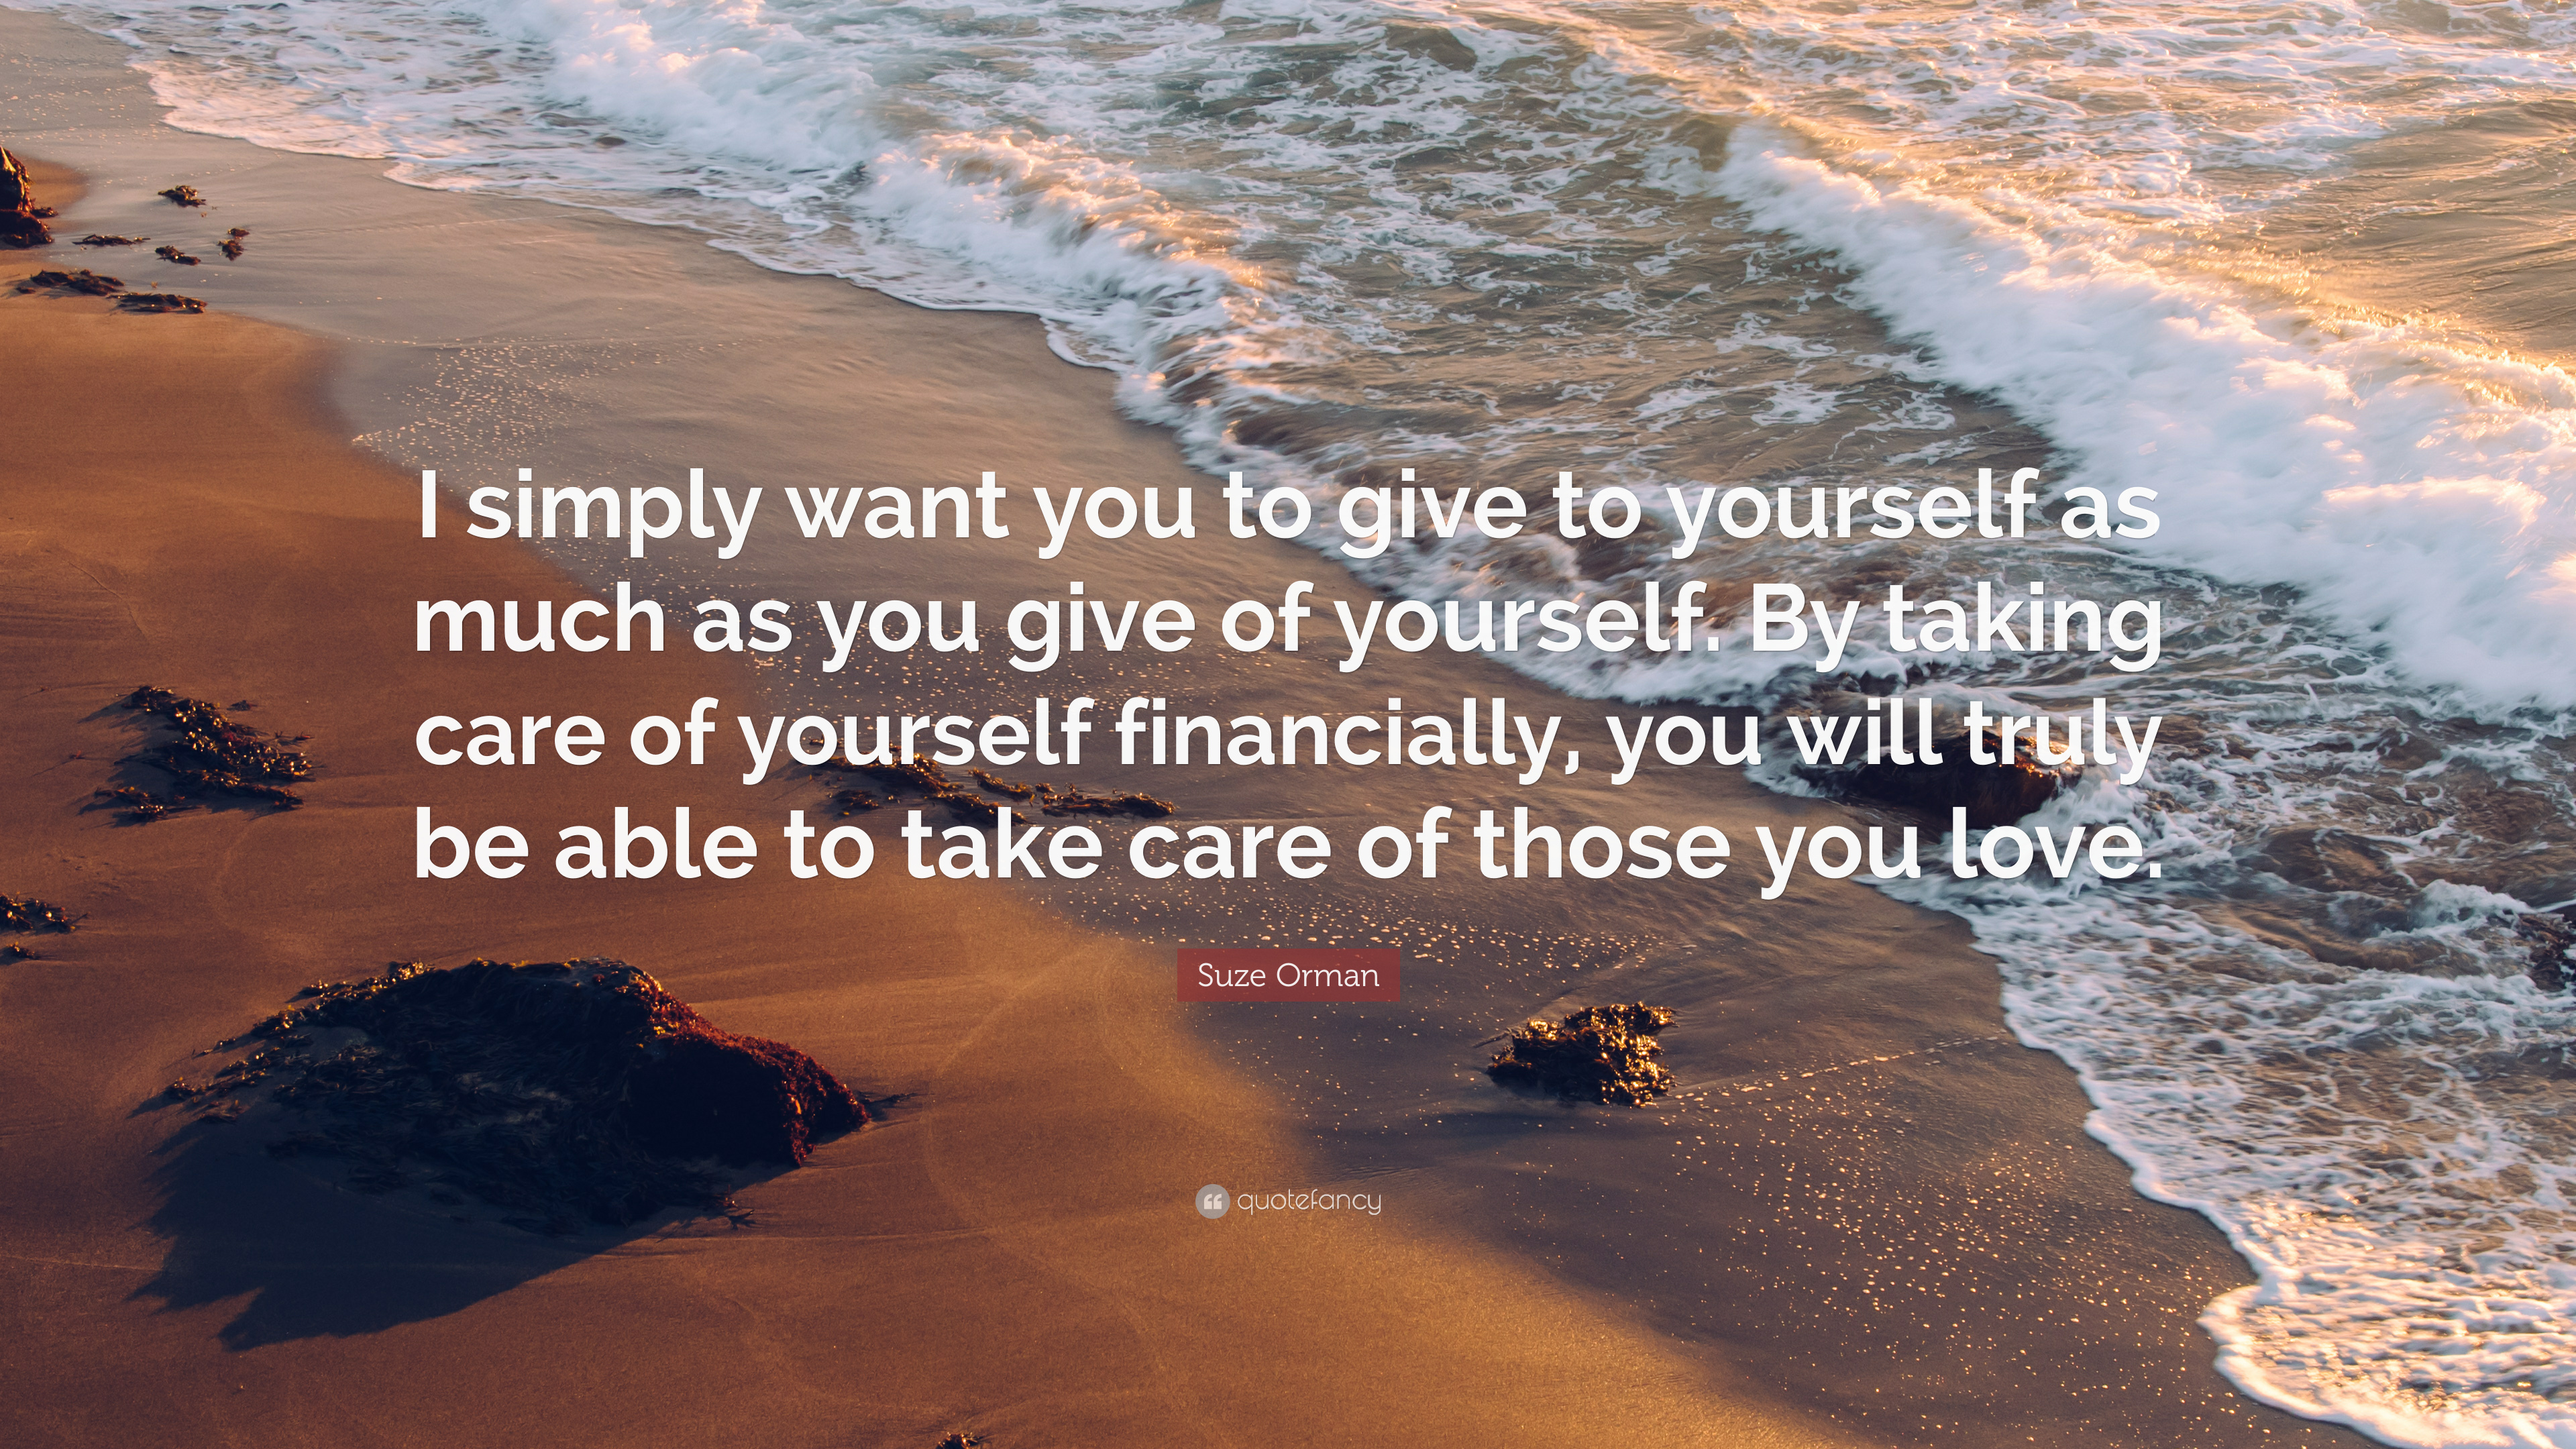 Suze orman quote i simply want you to give to yourself as much suze orman quote i simply want you to give to yourself as much as solutioingenieria Images